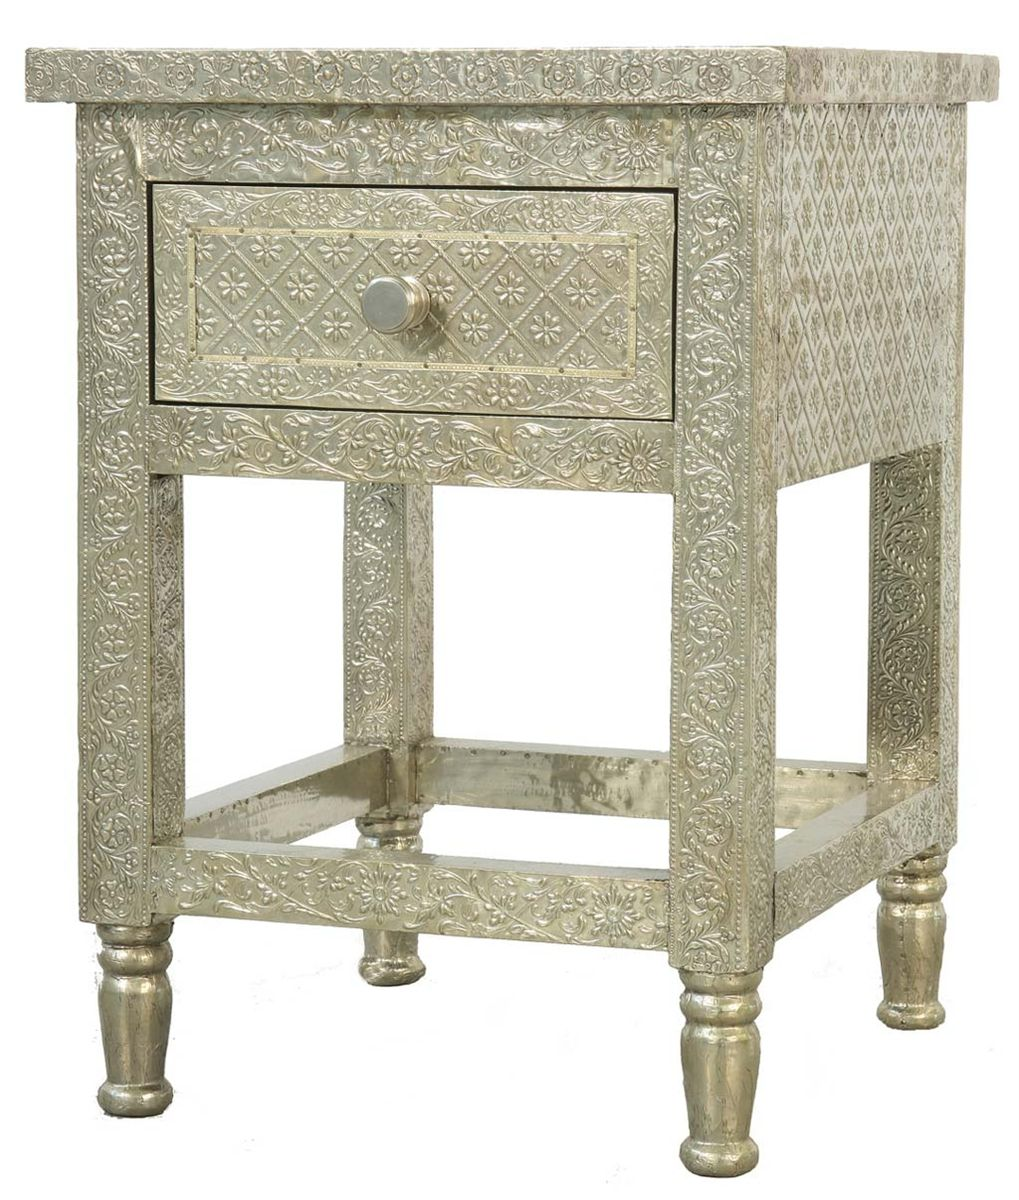 Vintage bedside table ideas - Vintage Silver Wood Bedside Table Furniture Design Ideas Alternative With Single Drawers Space And Amazing Creative